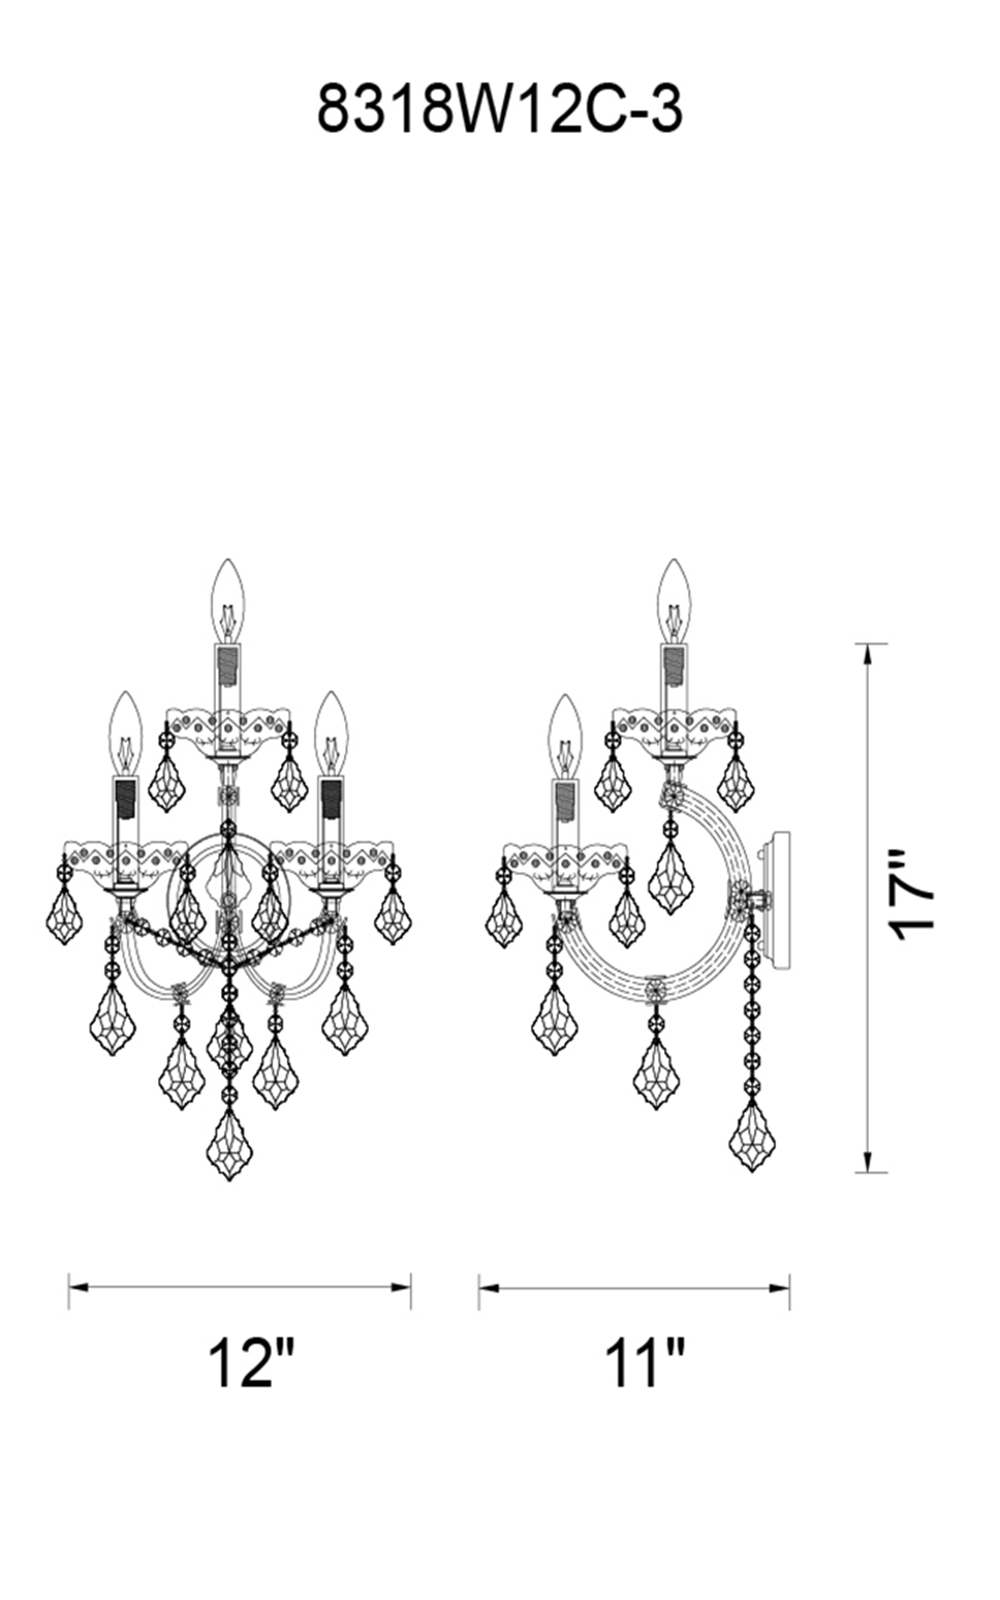 CWI Lighting Maria Theresa 3 Light Wall Sconce With Chrome Finish Model: 8318W12C-3 (CLEAR) Line Drawing